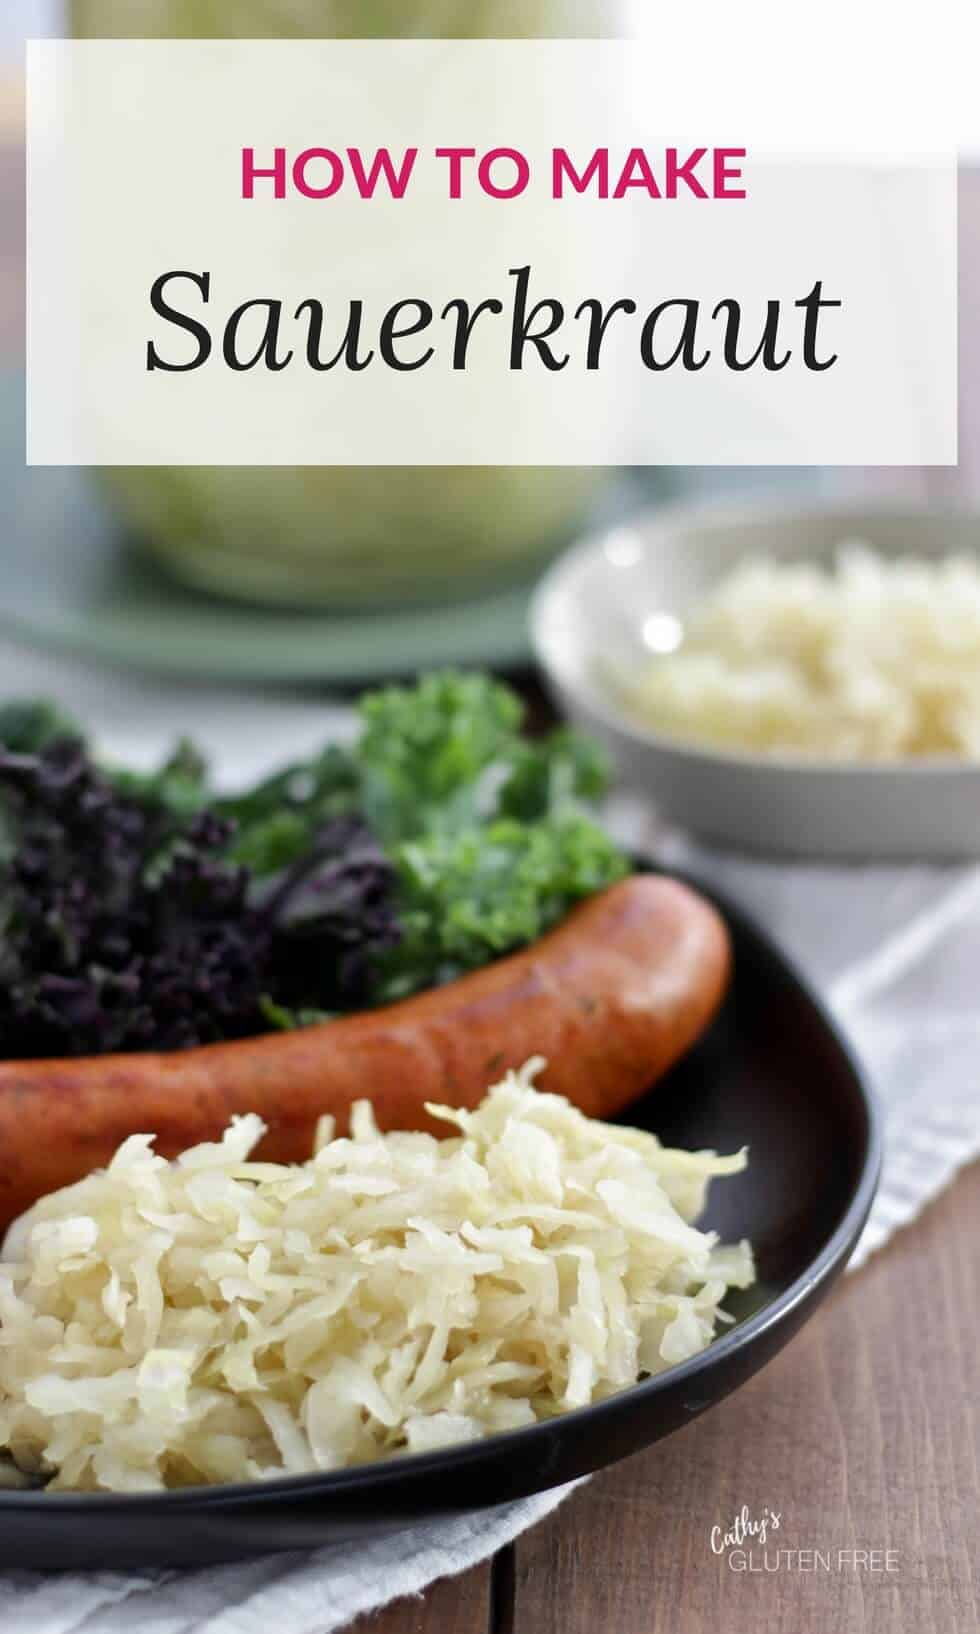 Learn how to make your own raw sauerkraut with two ingredients.